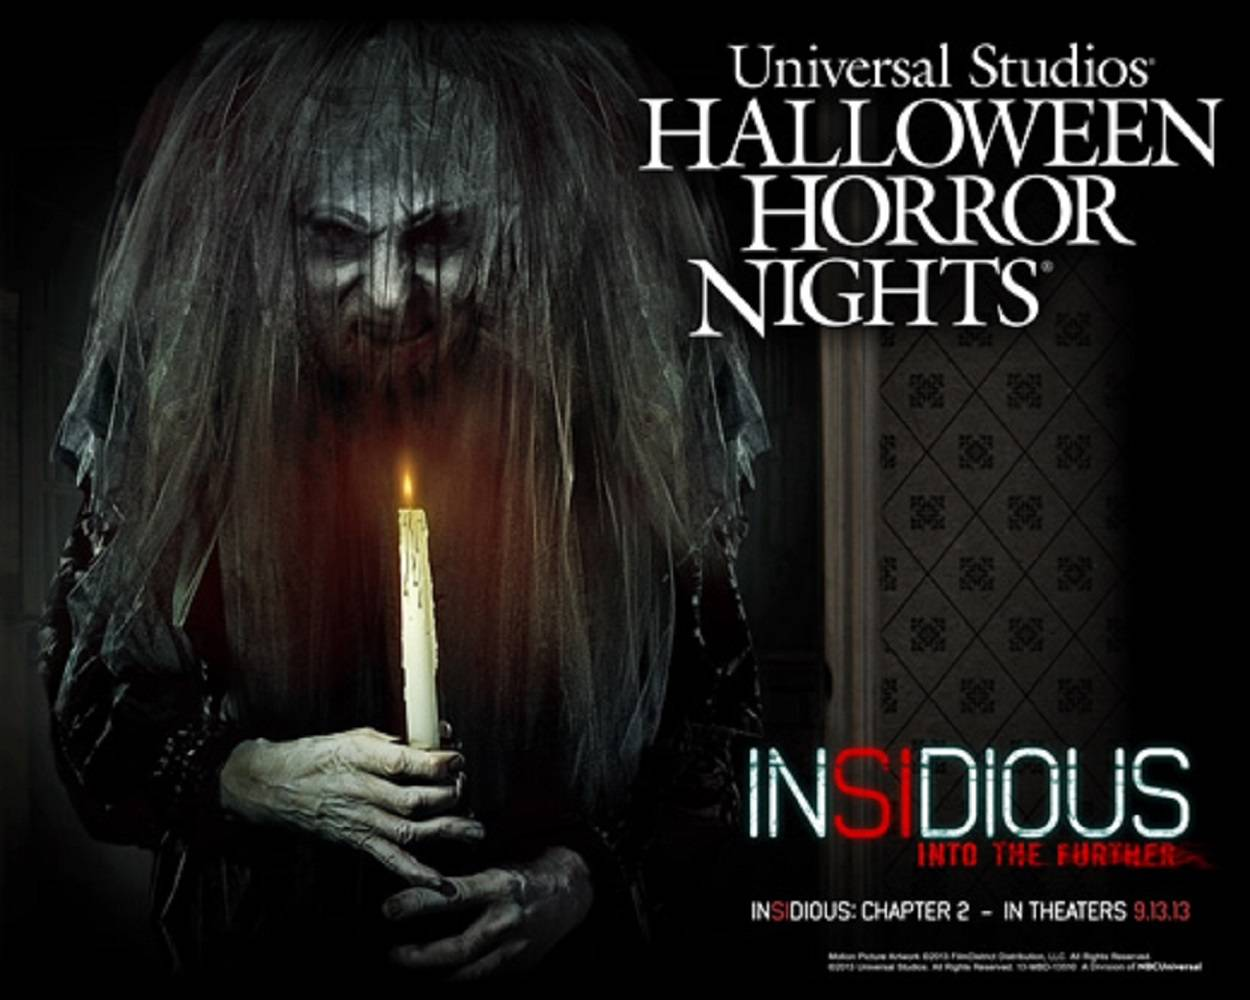 insidious 2 full movie free download hd